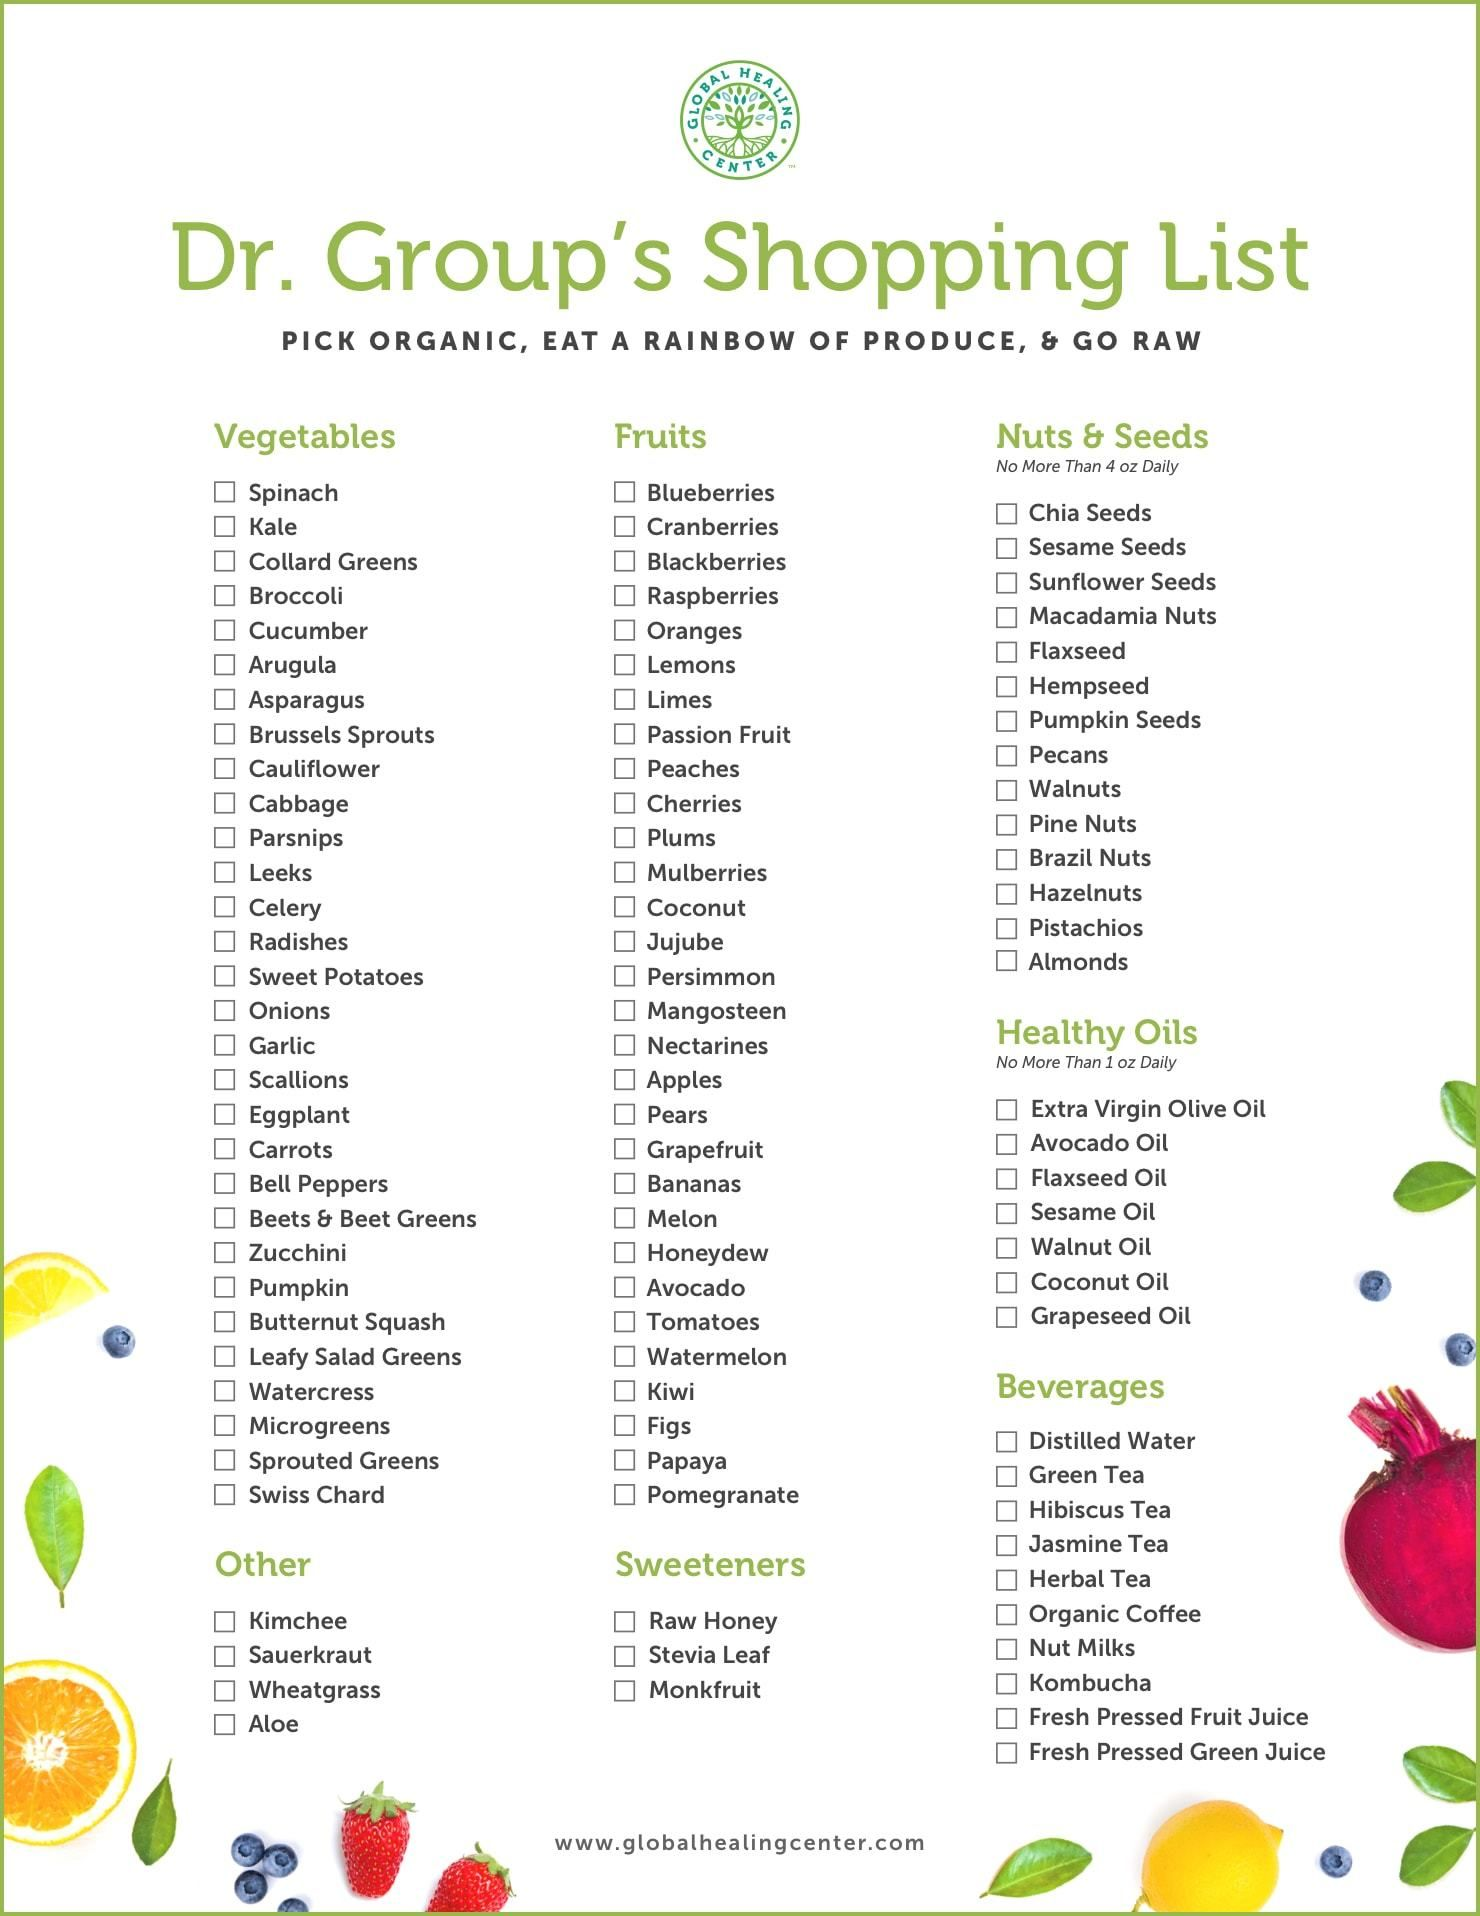 Dash Diet A Vegetarian Meal Plan For Heart Health Dr Group S Healthy Living Articles Dash Diet Raw Vegan Diet Vegetarian Meal Plan